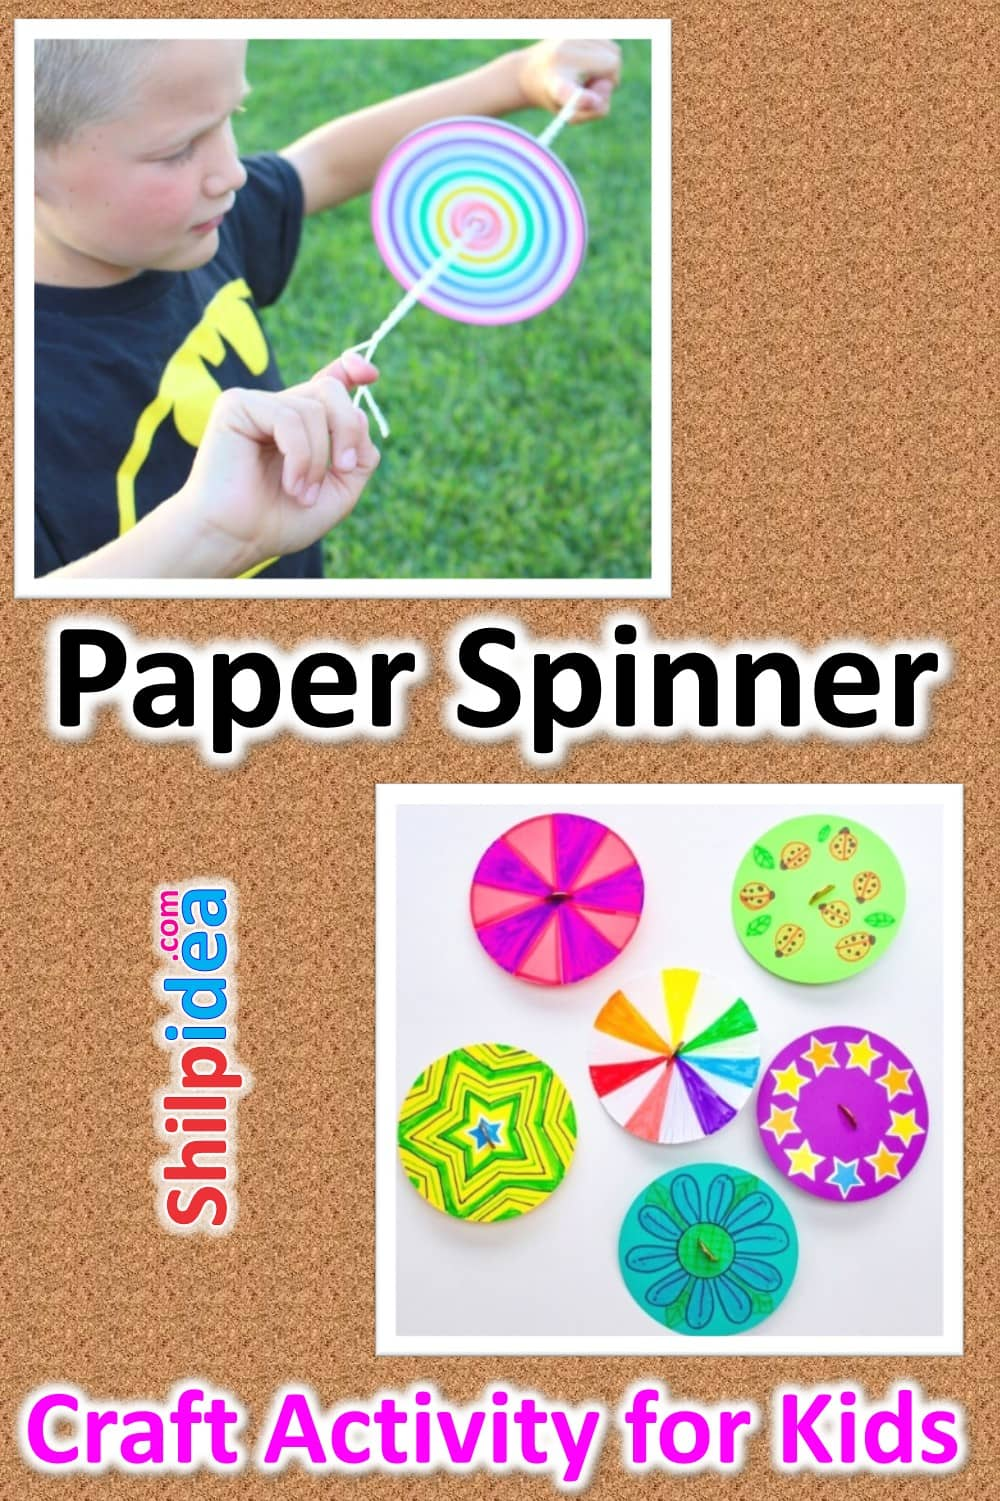 paper-spinner-craft-activity-shilpidea-pin